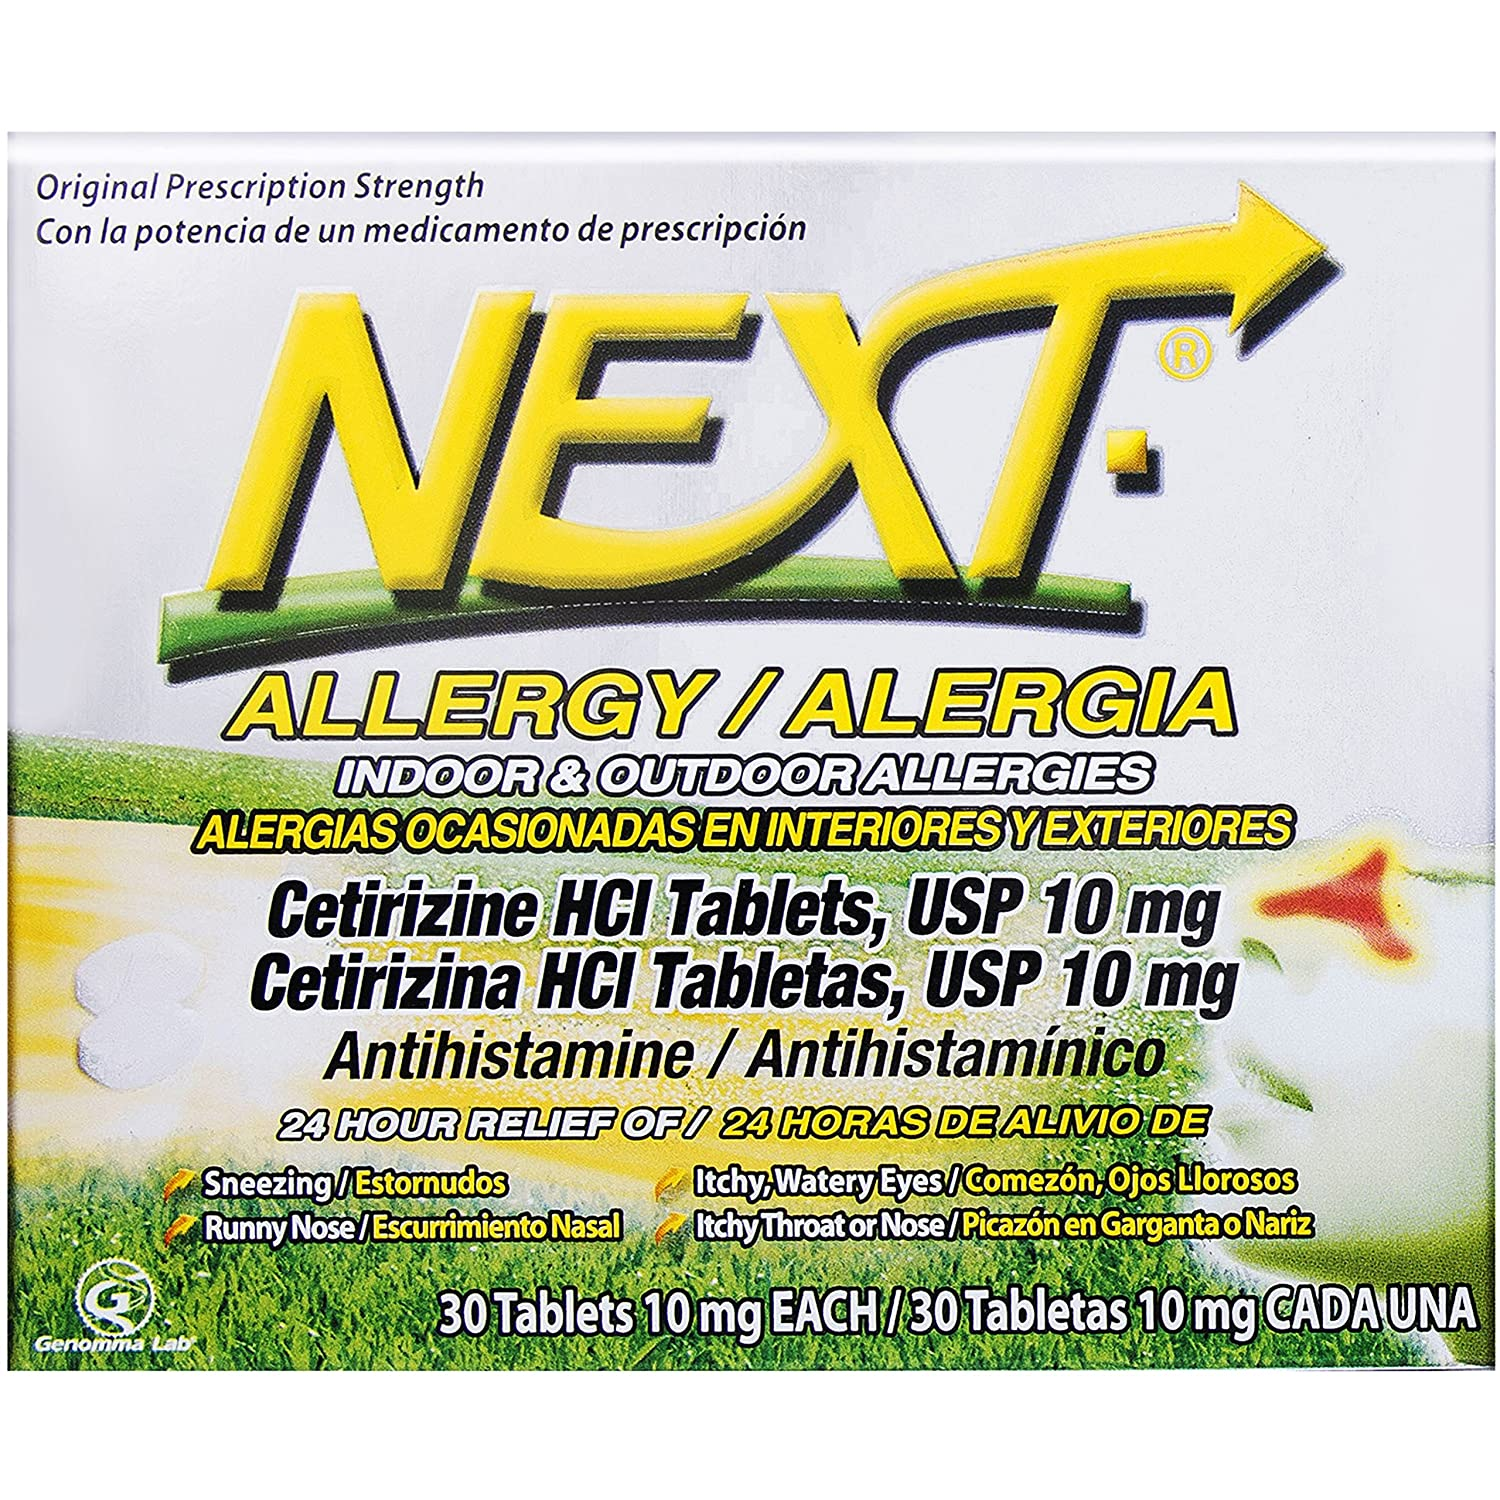 Amazon.com: Next 24 Hour Allergy Tablets Prescription Strength Antihistamine Cetirizine, 30 Count: Health & Personal Care